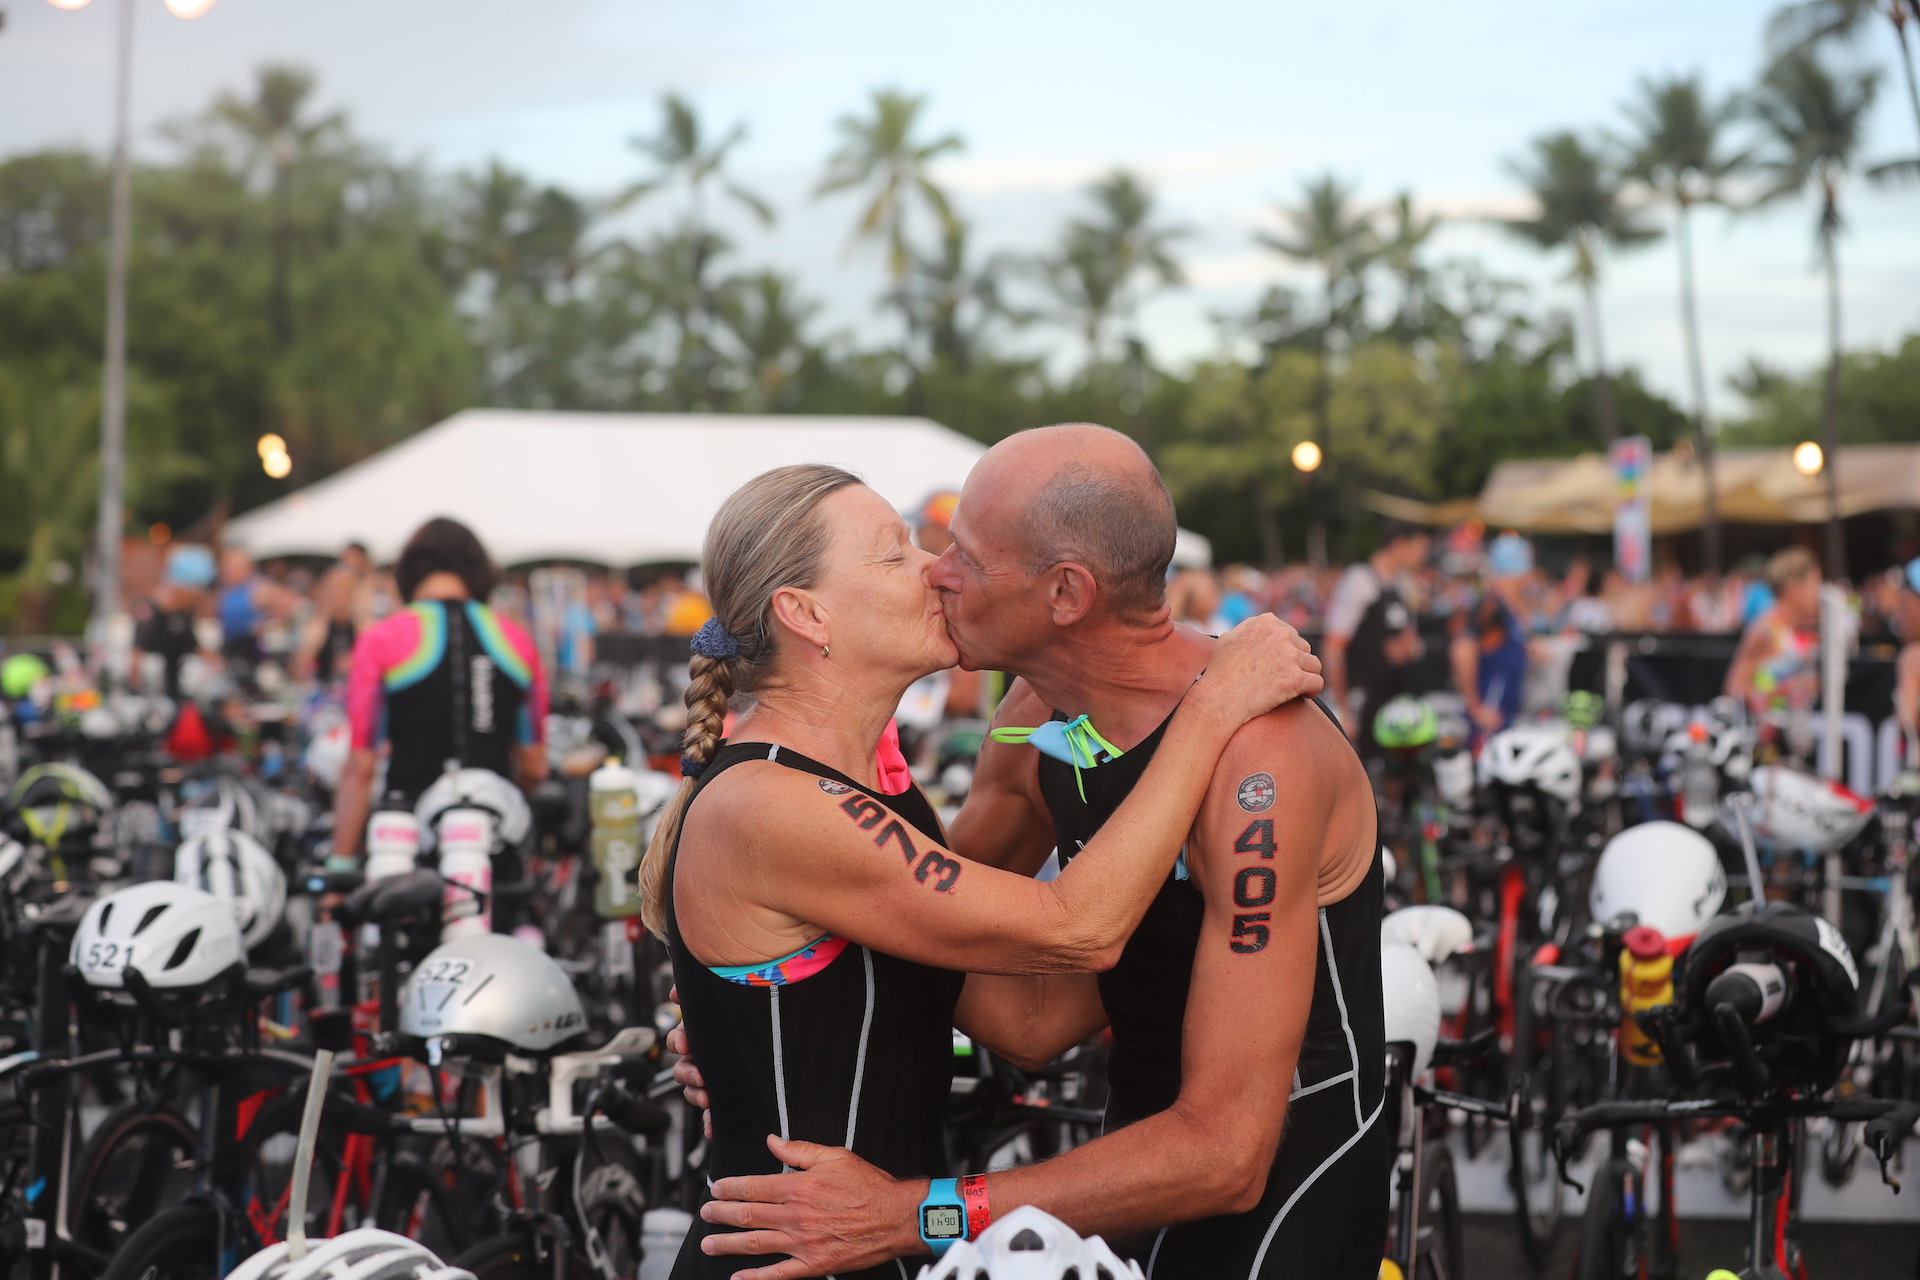 ALOHA IN ACTION: Cordula and Michael Gruber from Munich share a kiss as they set off on their respective journeys at the 2018 IRONMAN World Championship in Kailua-Kona. Both members of Team Gruber were competing in the 55-59 age-group category. The race this year marks the 40th Anniversary of the IRONMAN World Championship (Photo by Tony Svensson/IRONMAN)